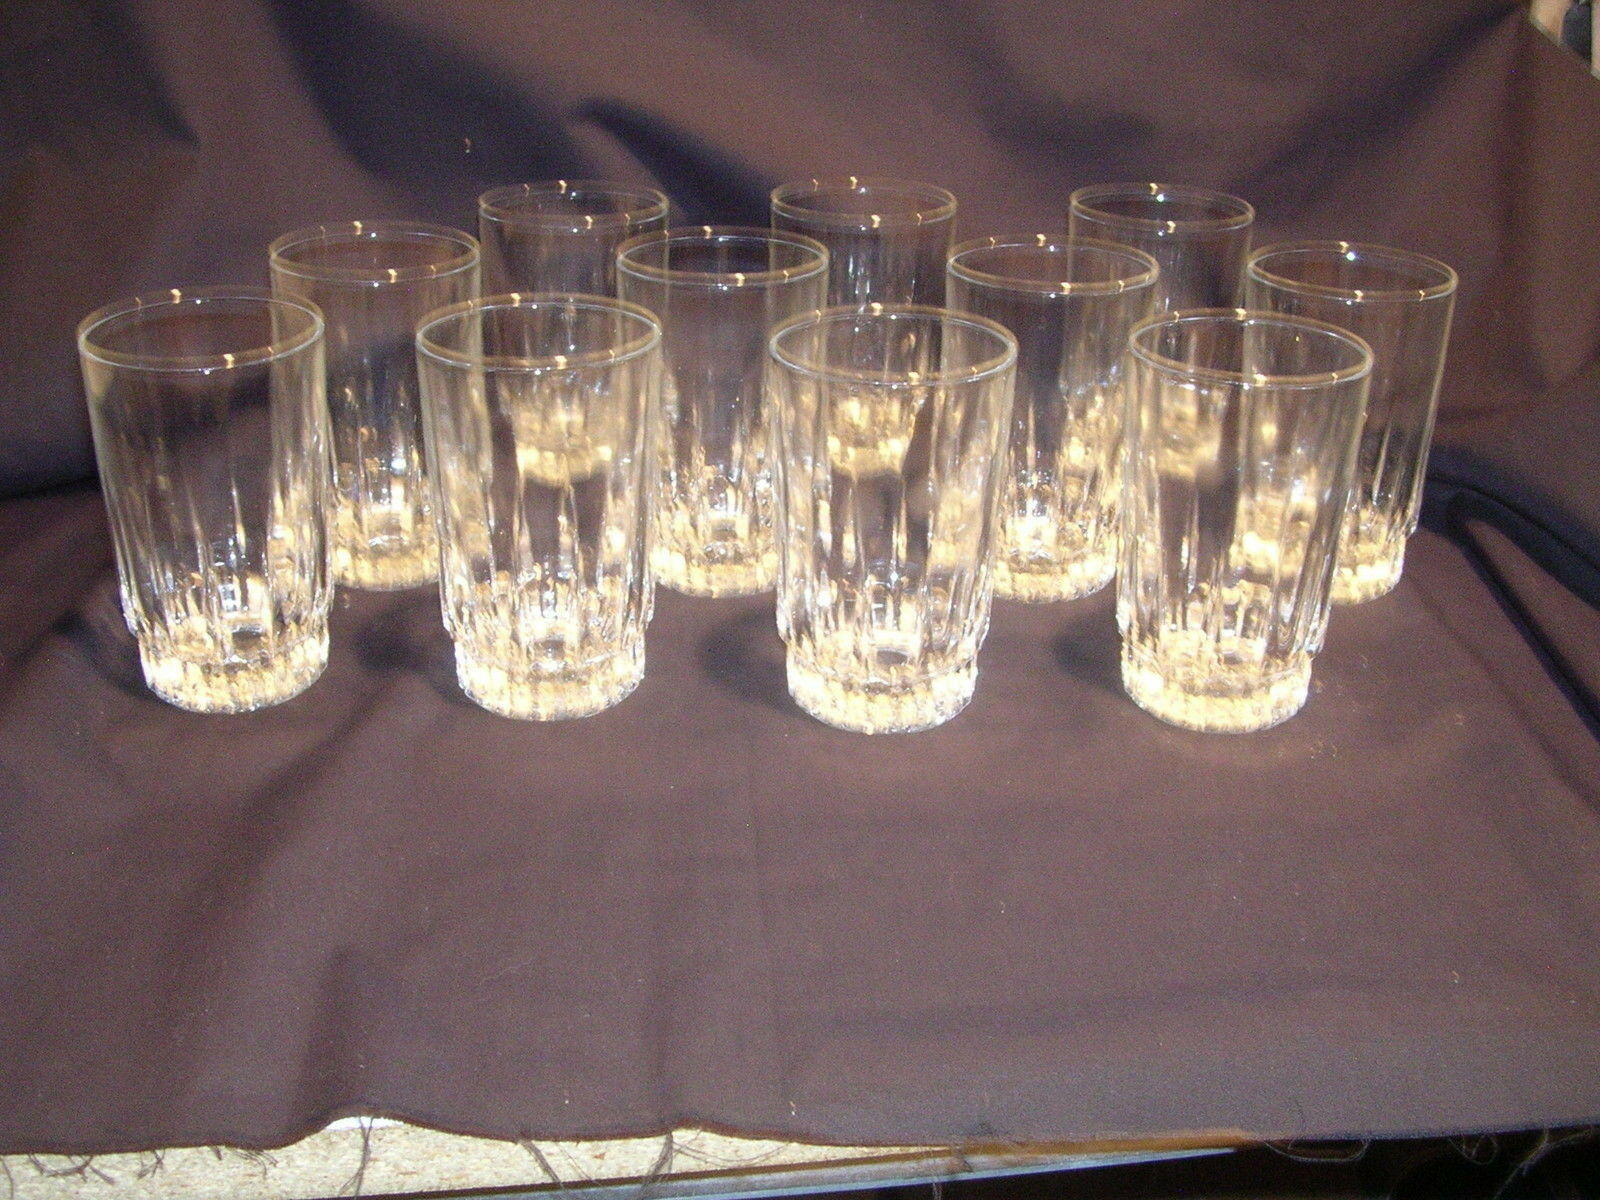 VTG Double Old Fashioned Drinking Glasses Mixing   Mixers Set of 12